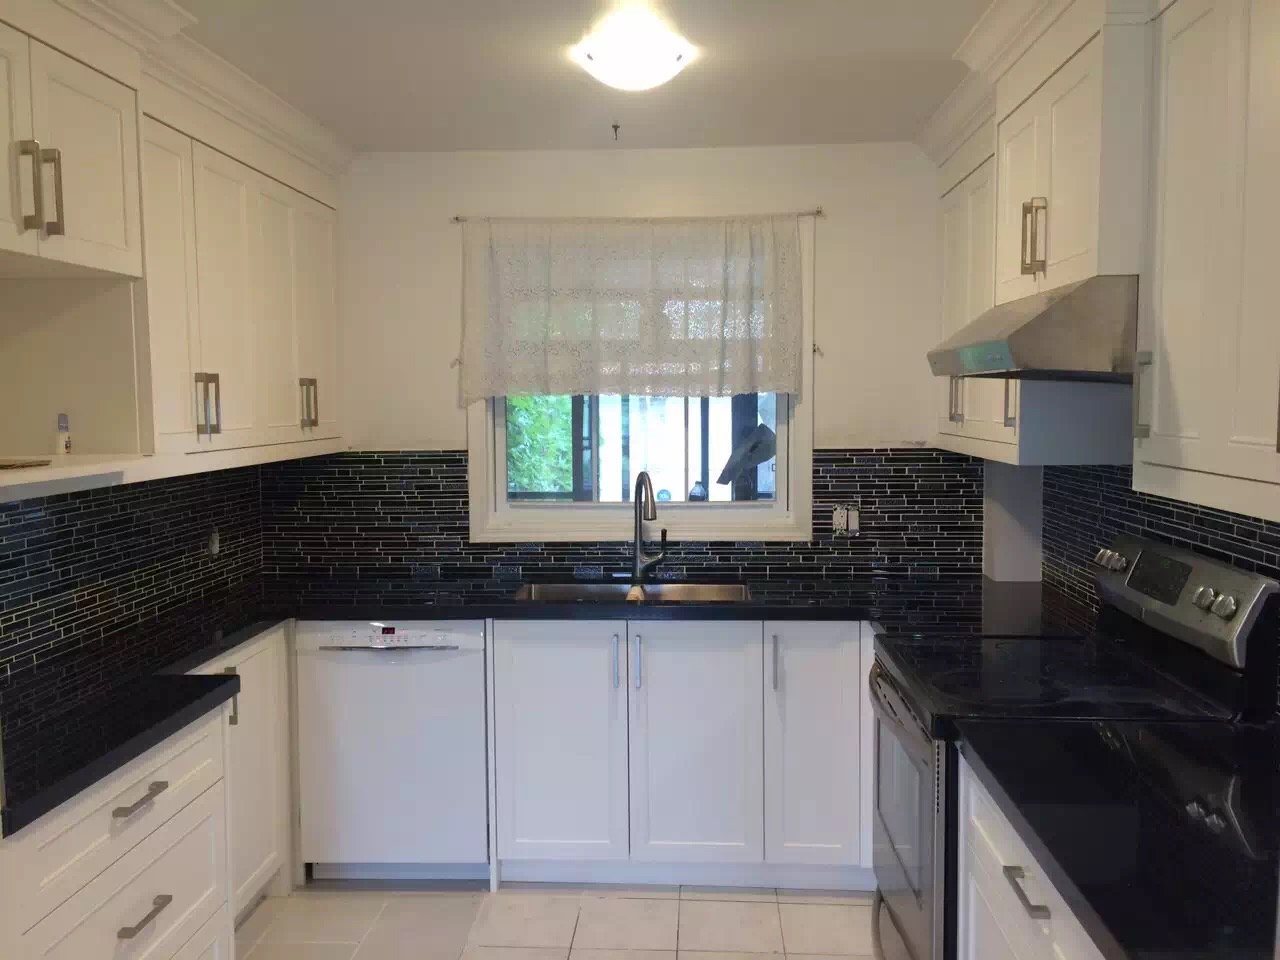 Kitchen cabinet picture 2